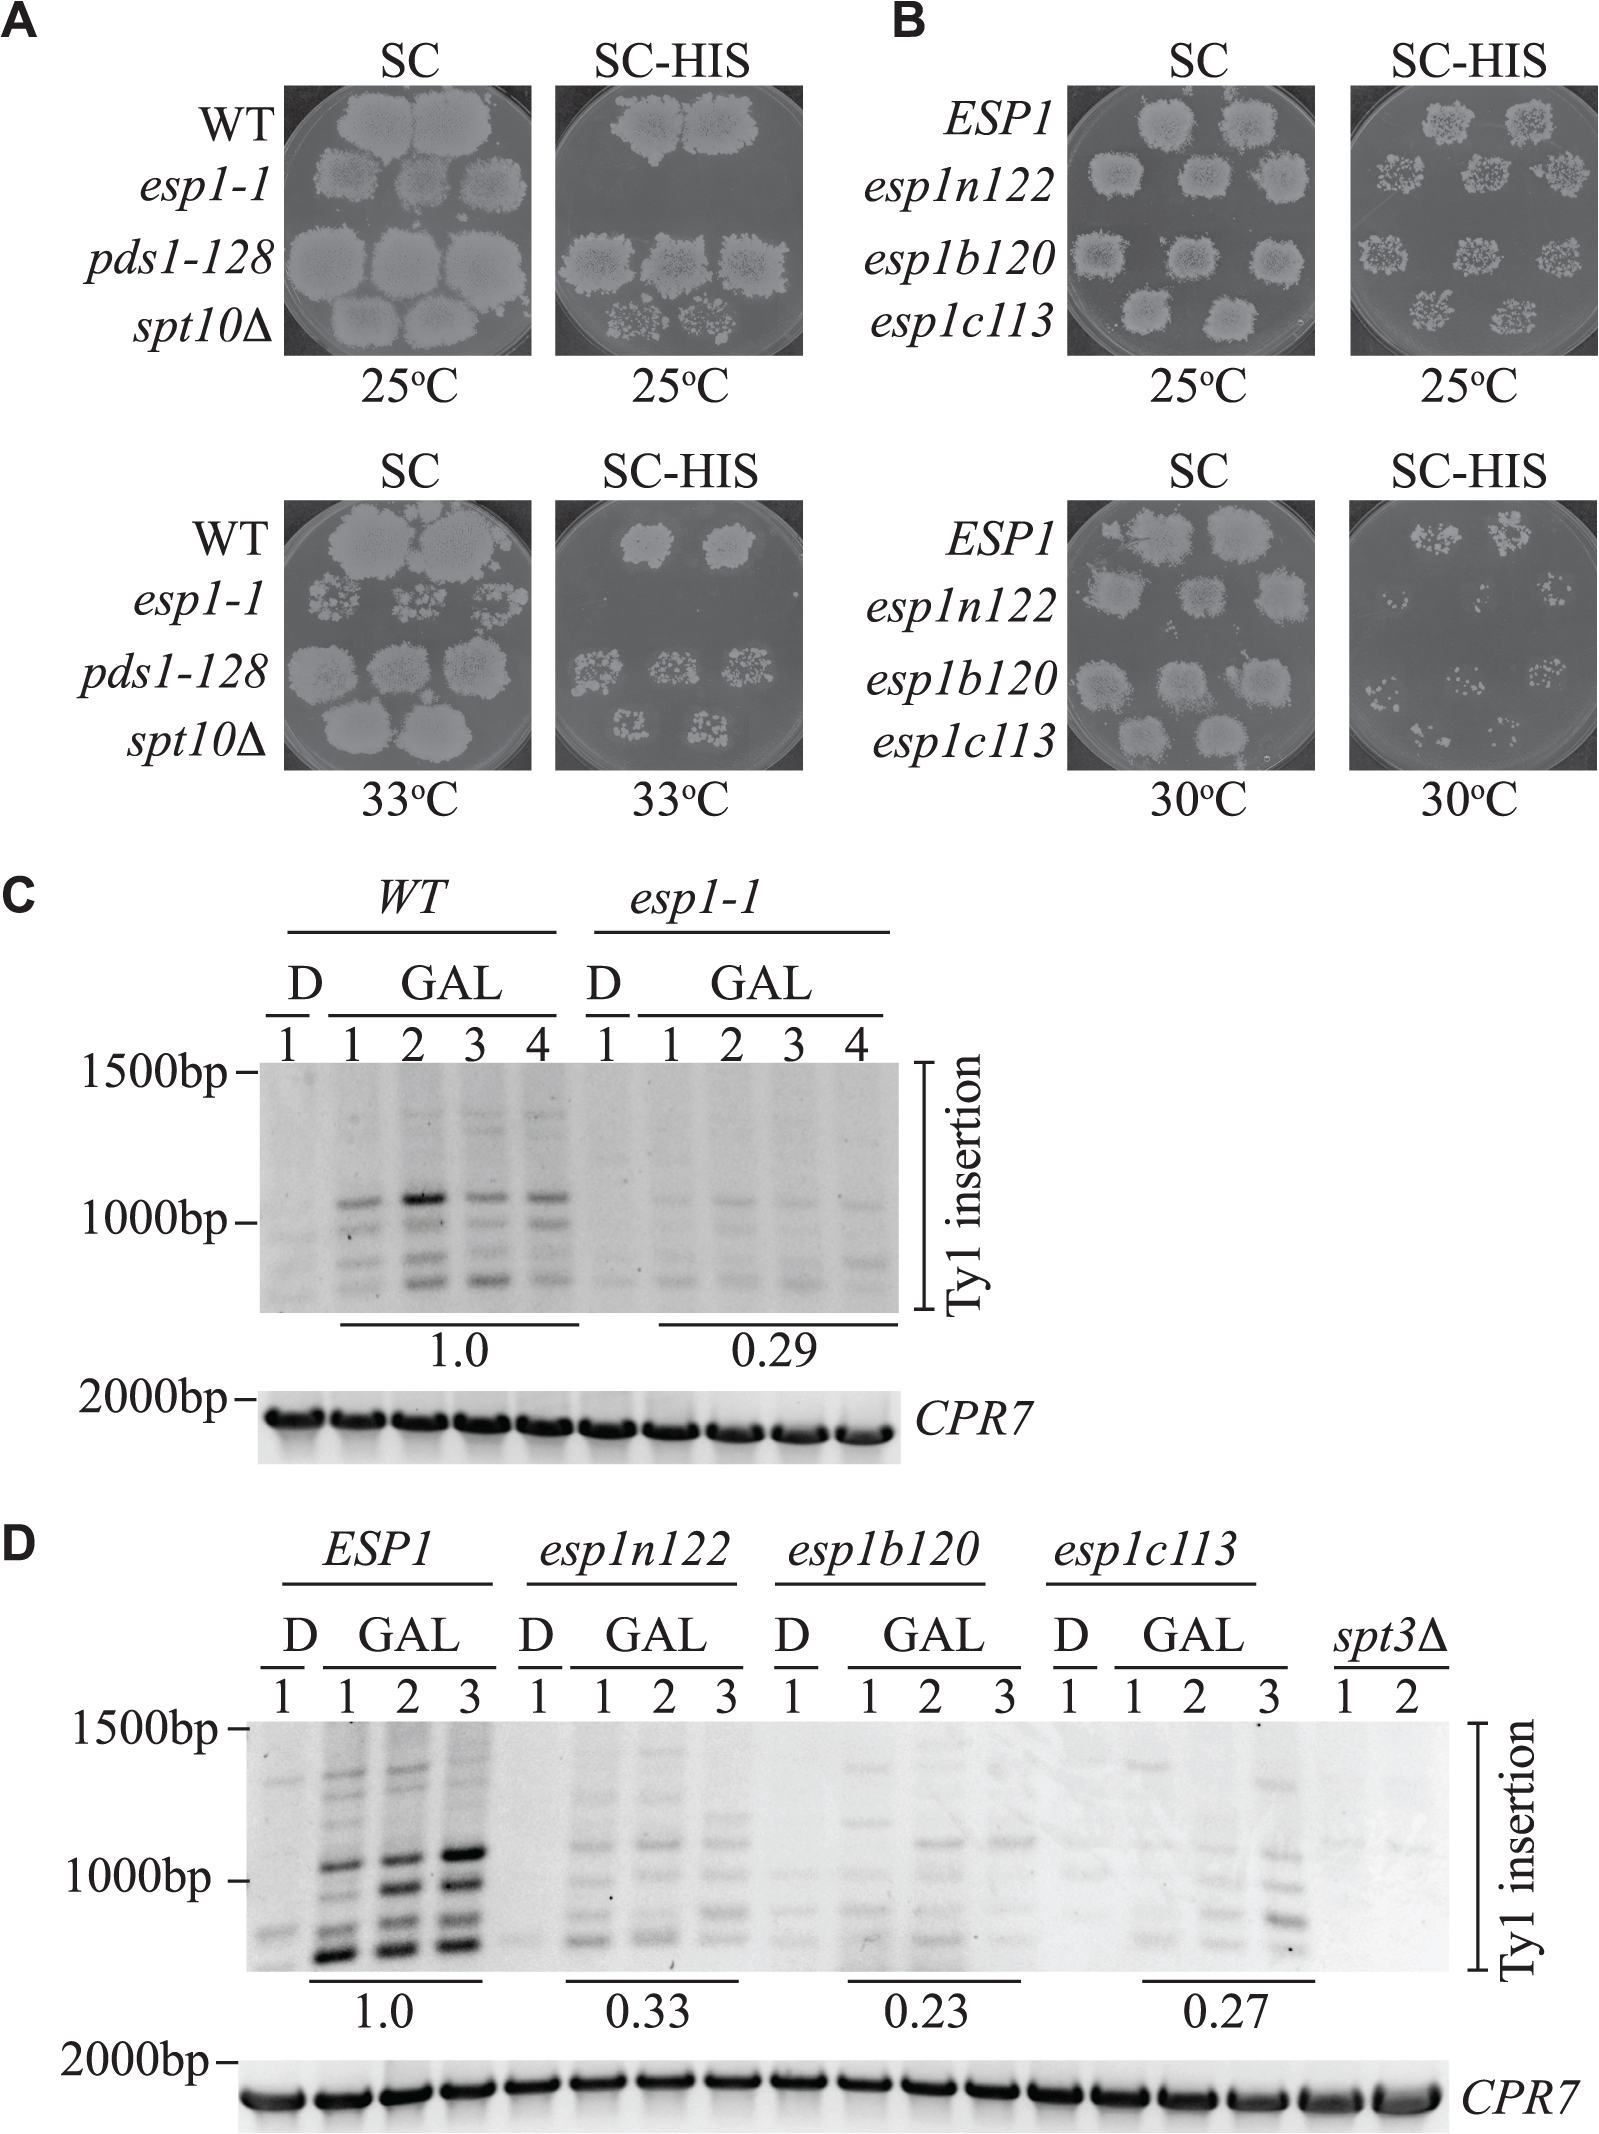 All Esp1 domains contribute to Ty1 transposition.